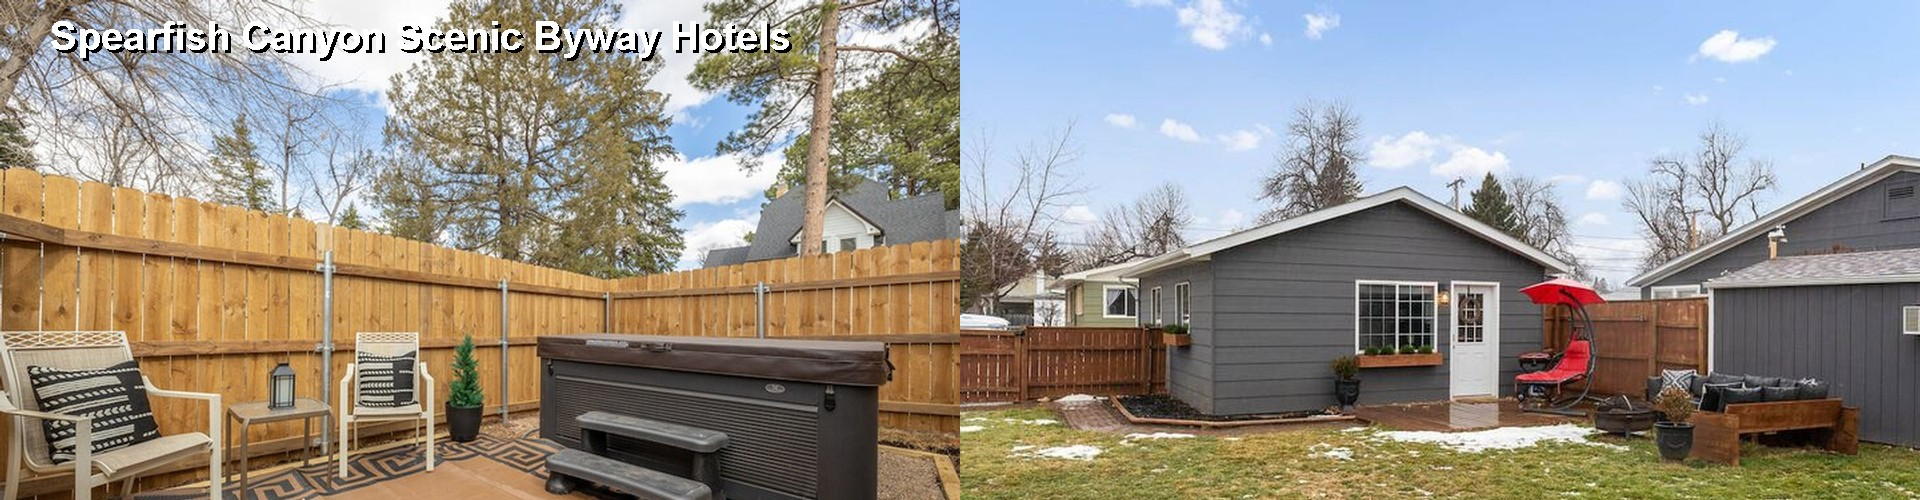 5 Best Hotels Near Spearfish Canyon Scenic Byway